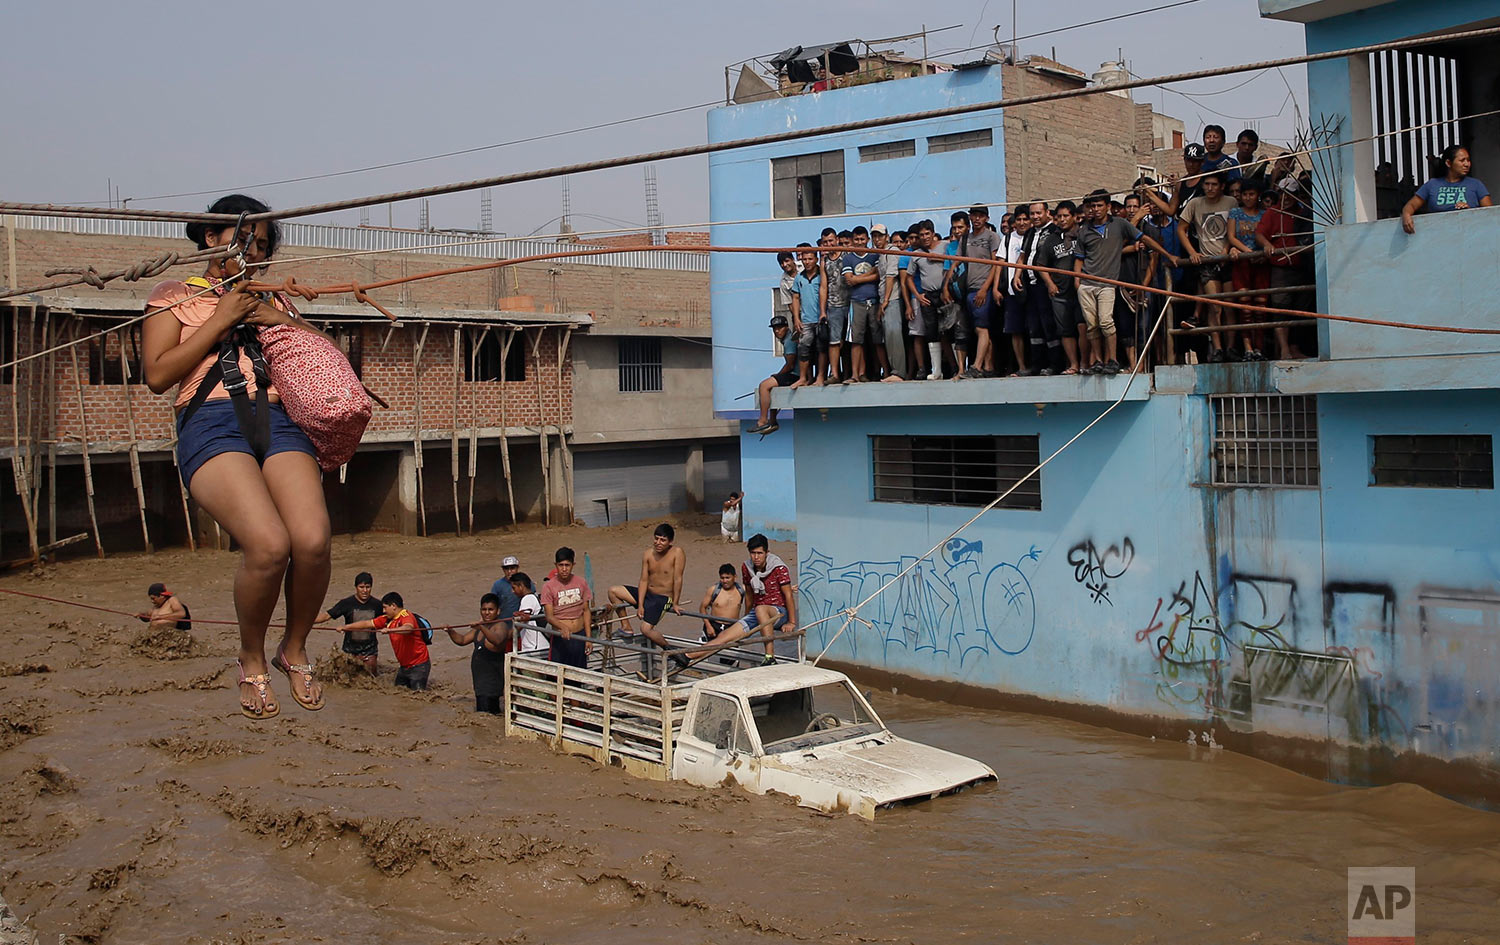 A woman is pulled to safety in a zipline harness in Lima, Peru, Friday, March 17, 2017. Intense rains and mudslides over three days wrought havoc around the Andean nation and caught residents in Lima, a desert city of 10 million where it almost never rains, by surprise. (AP Photo/Martin Mejia)